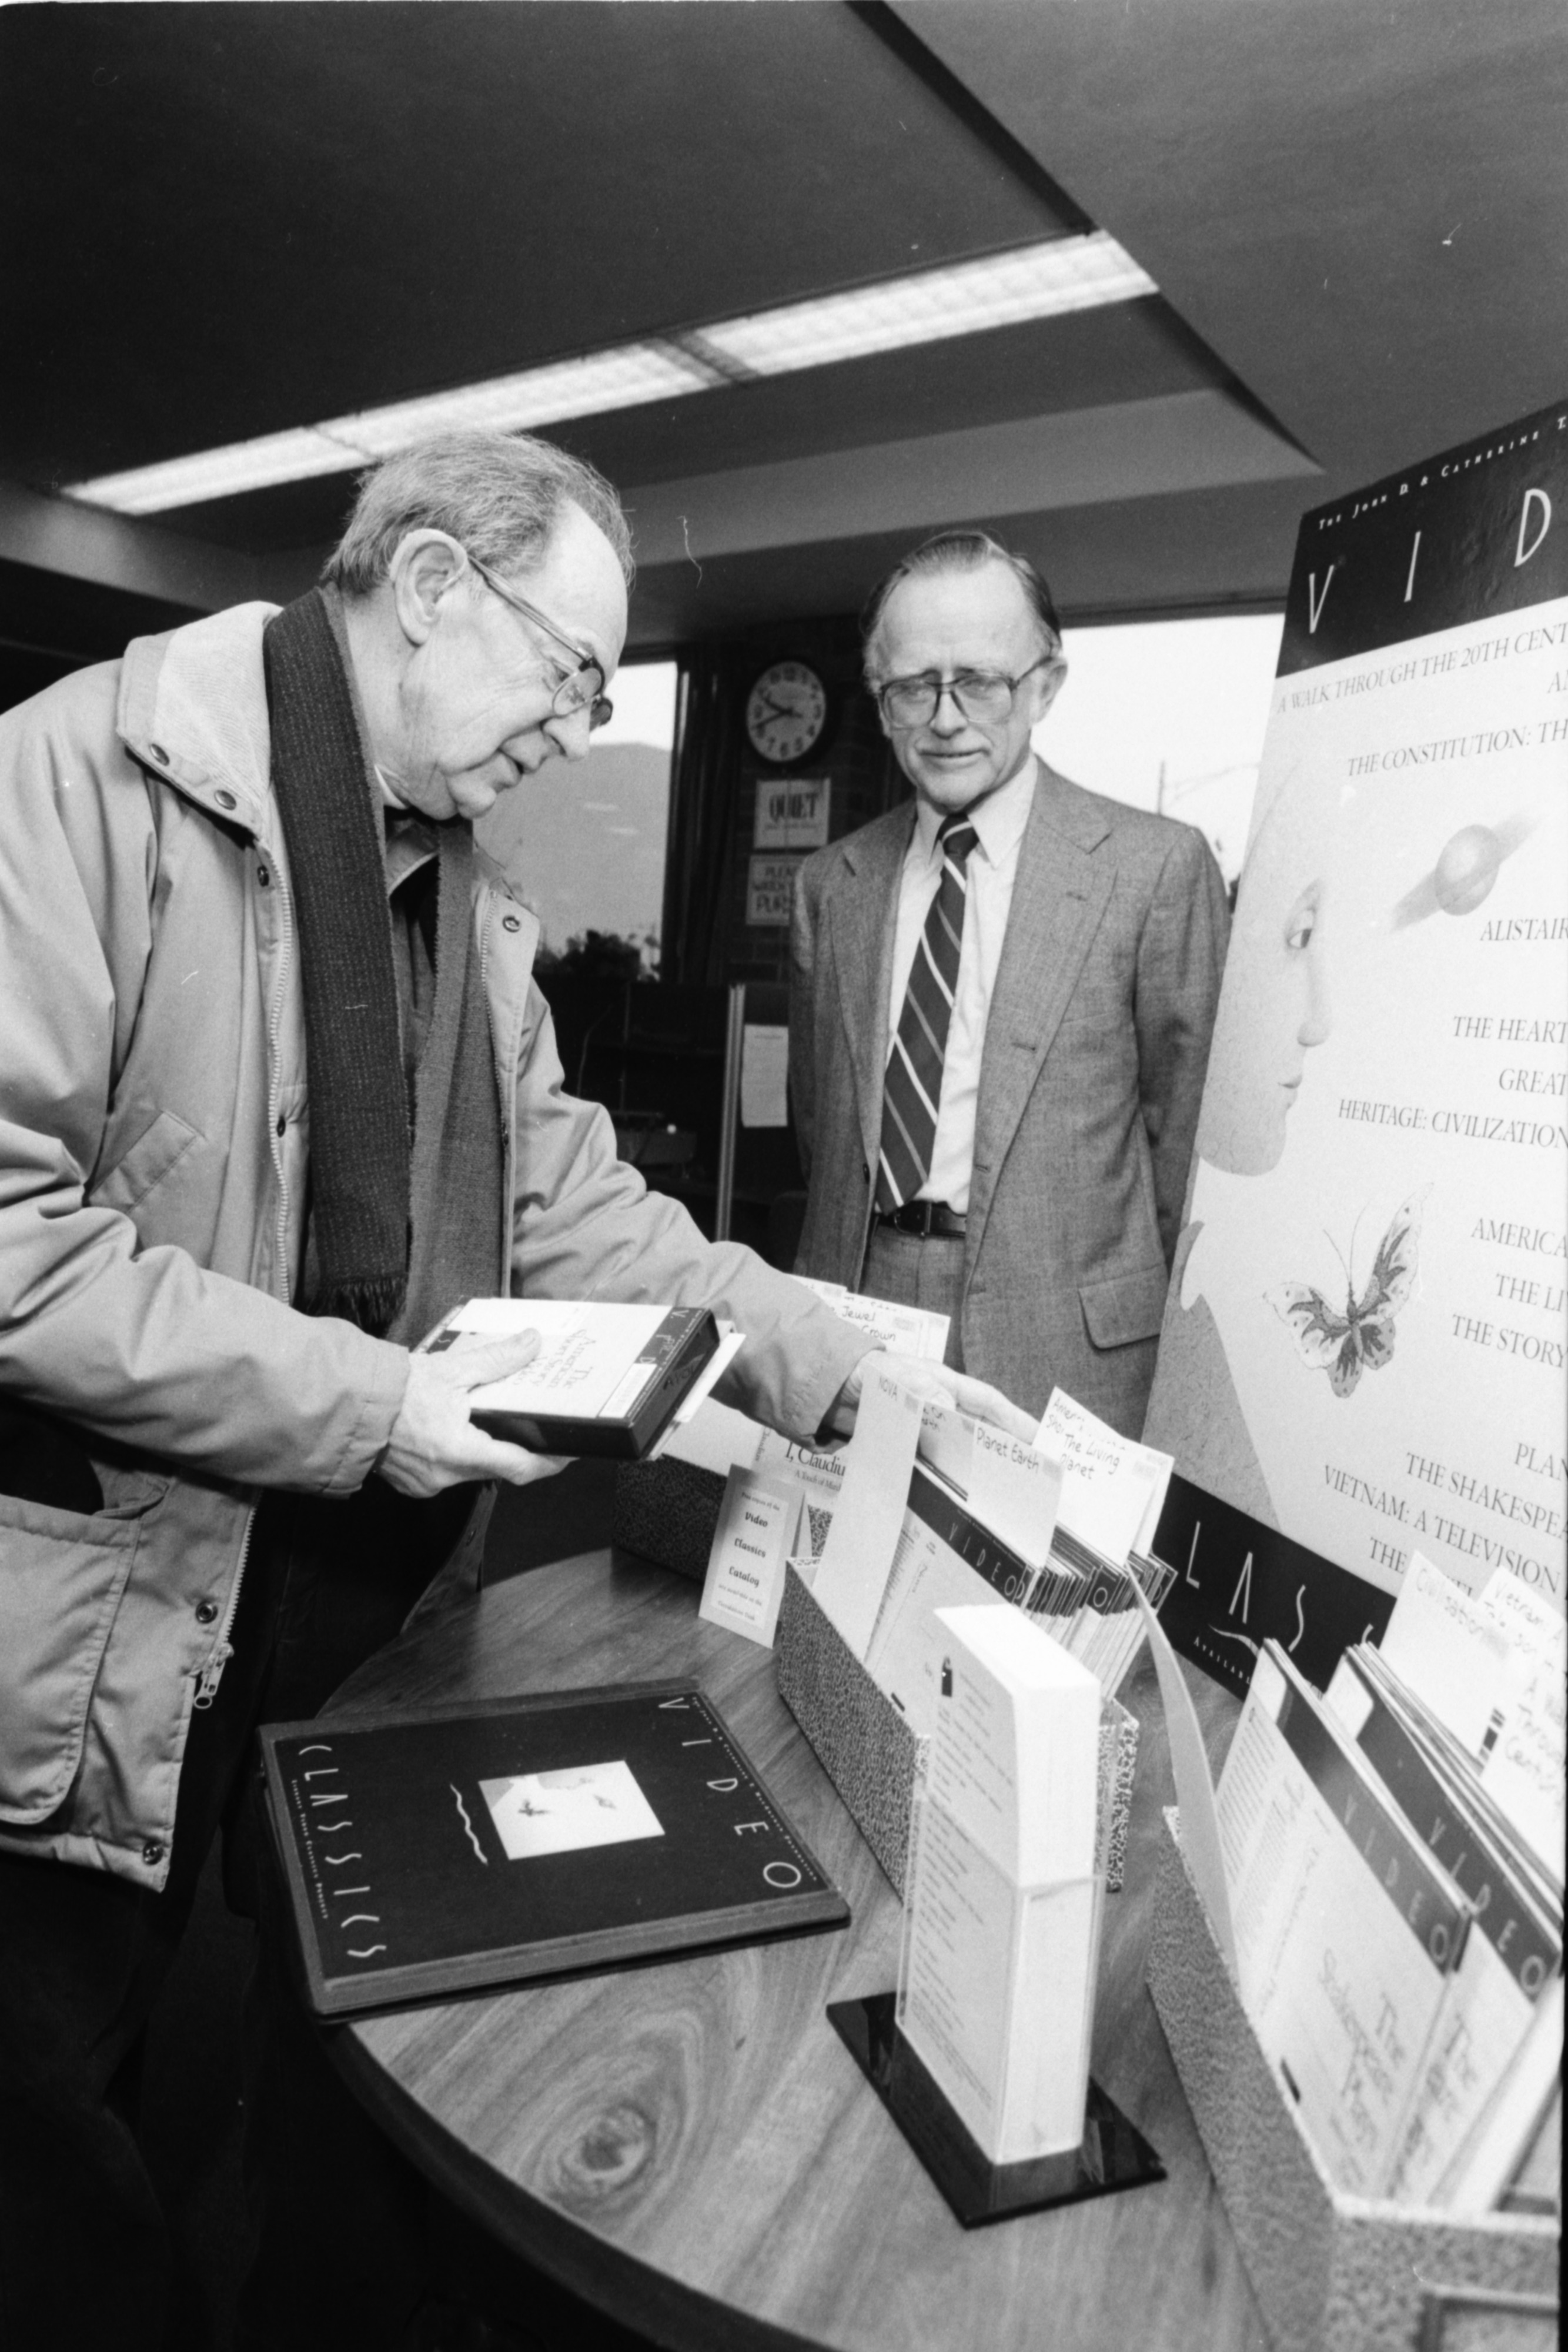 Henry Meyer and Don Axon of the Friends of the Ann Arbor Public Library Look Over New VHS Collection at the Library, January 1989 image